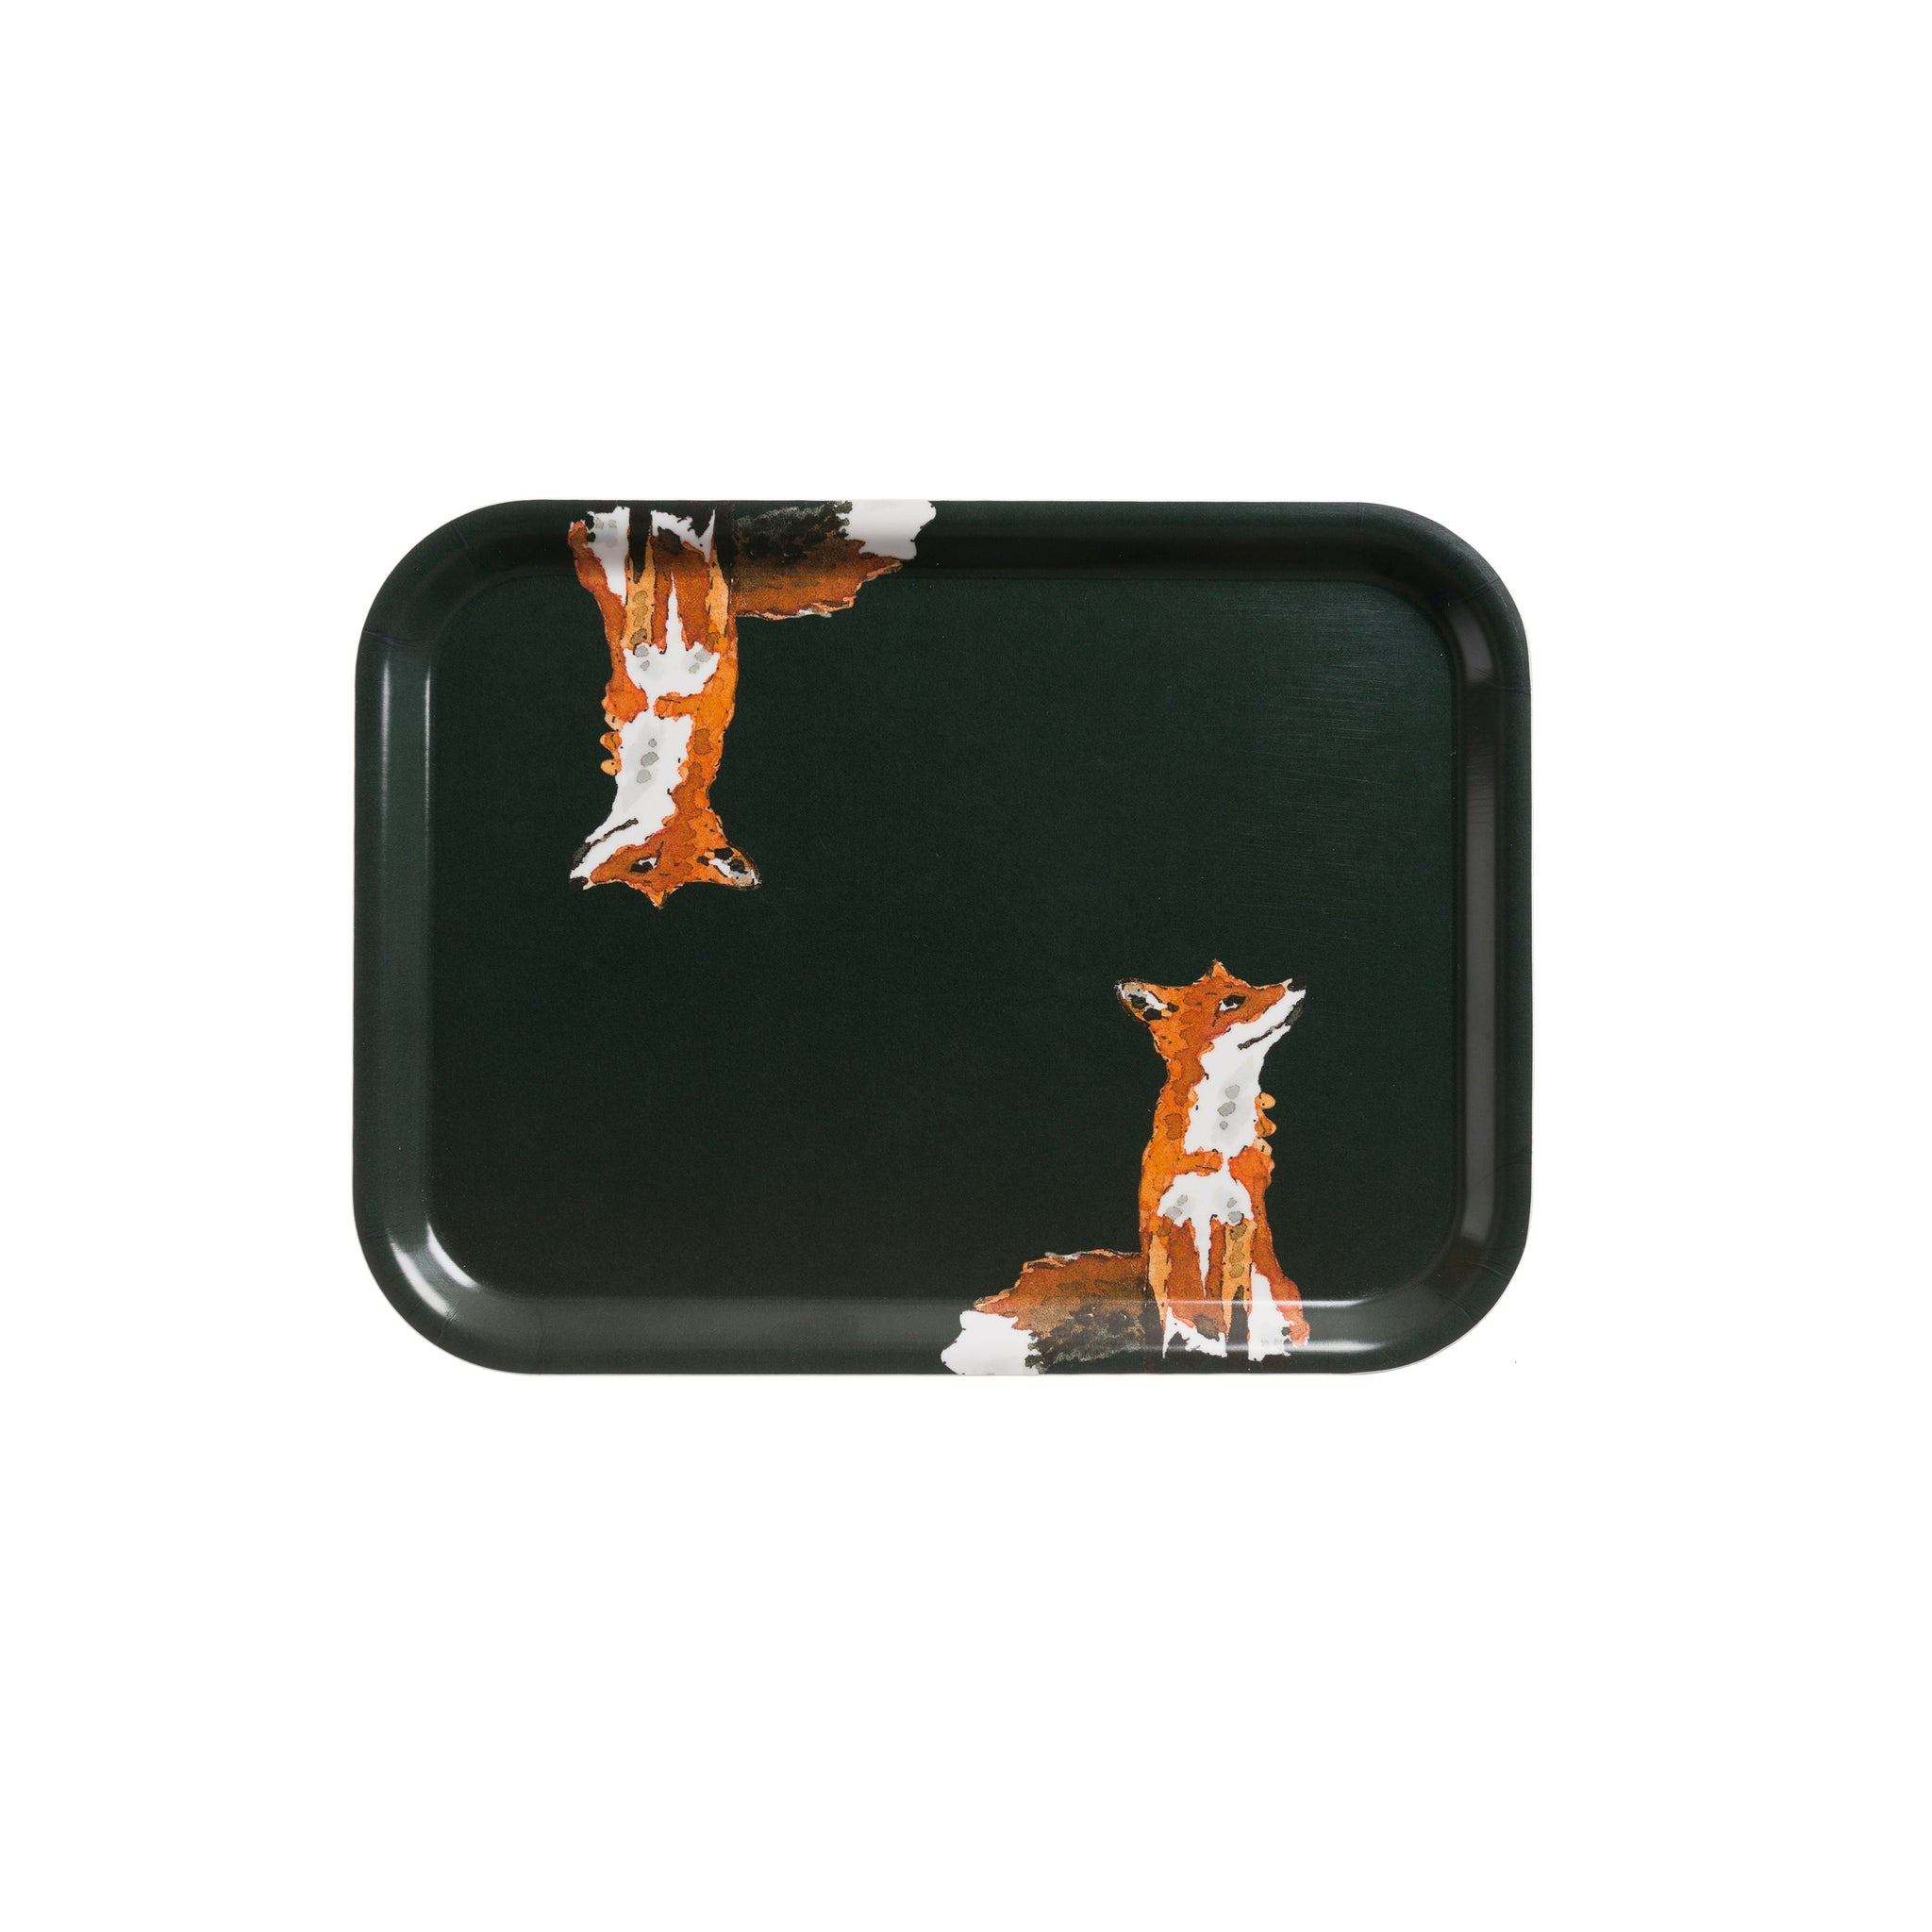 Printed Tray - Large - Foxes